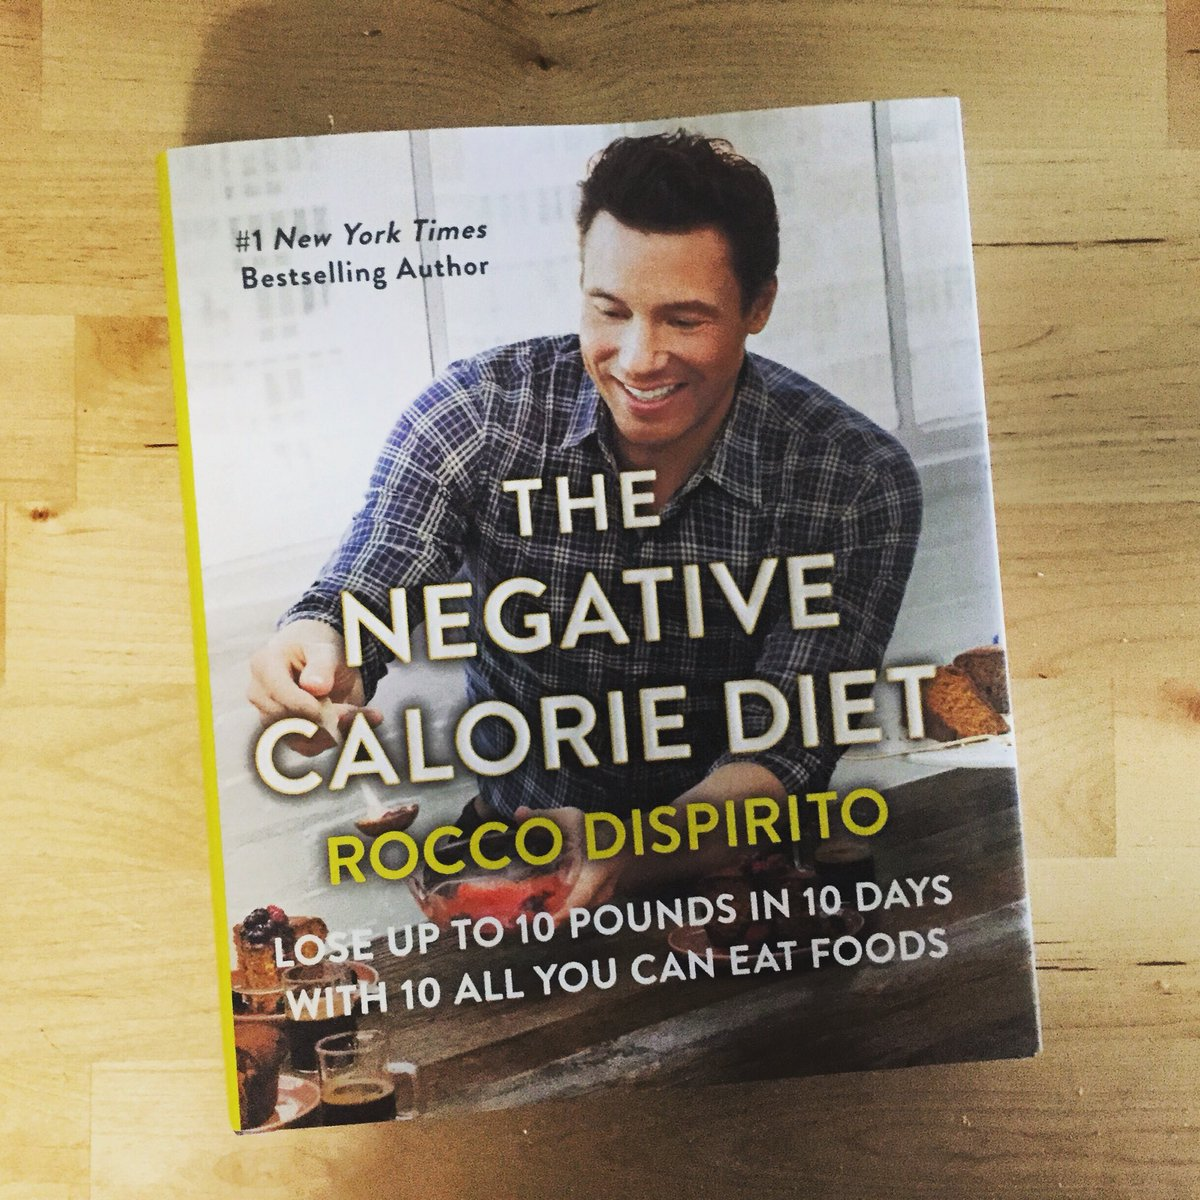 Who's coming over for dinner? Thanks, @roccodispirito! #WorldHealthDay https://t.co/duBnKwi21n